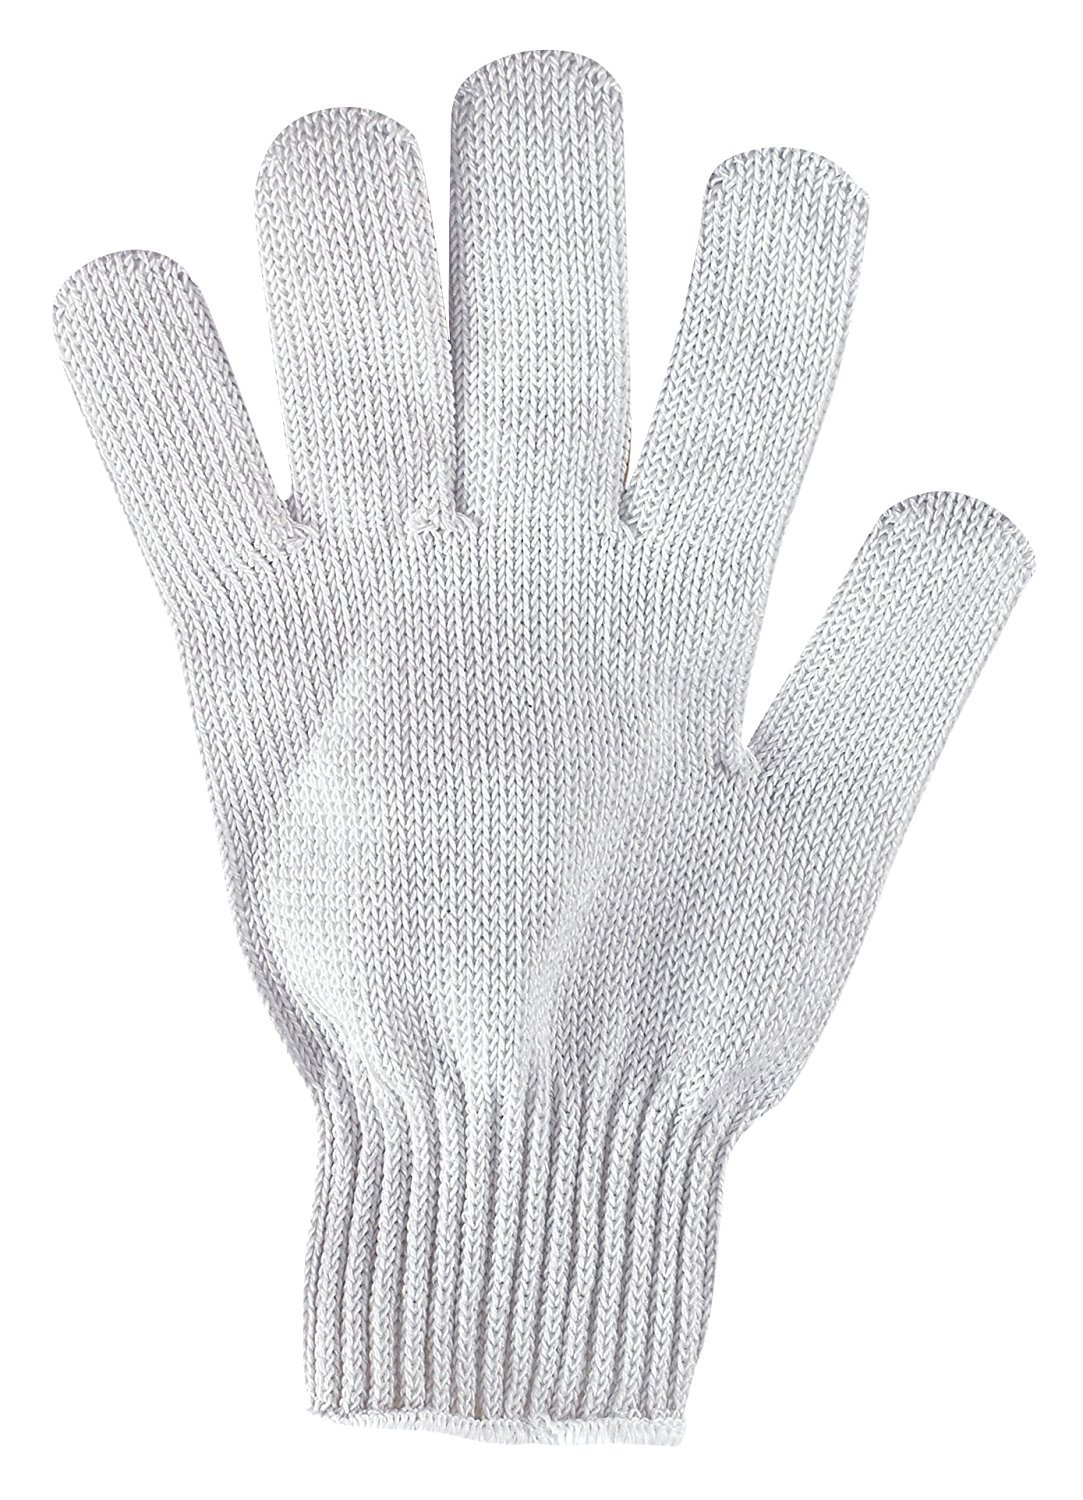 Intruder 15002 Resistant Mesh Cutting Gloves Size Small White Made in The USA